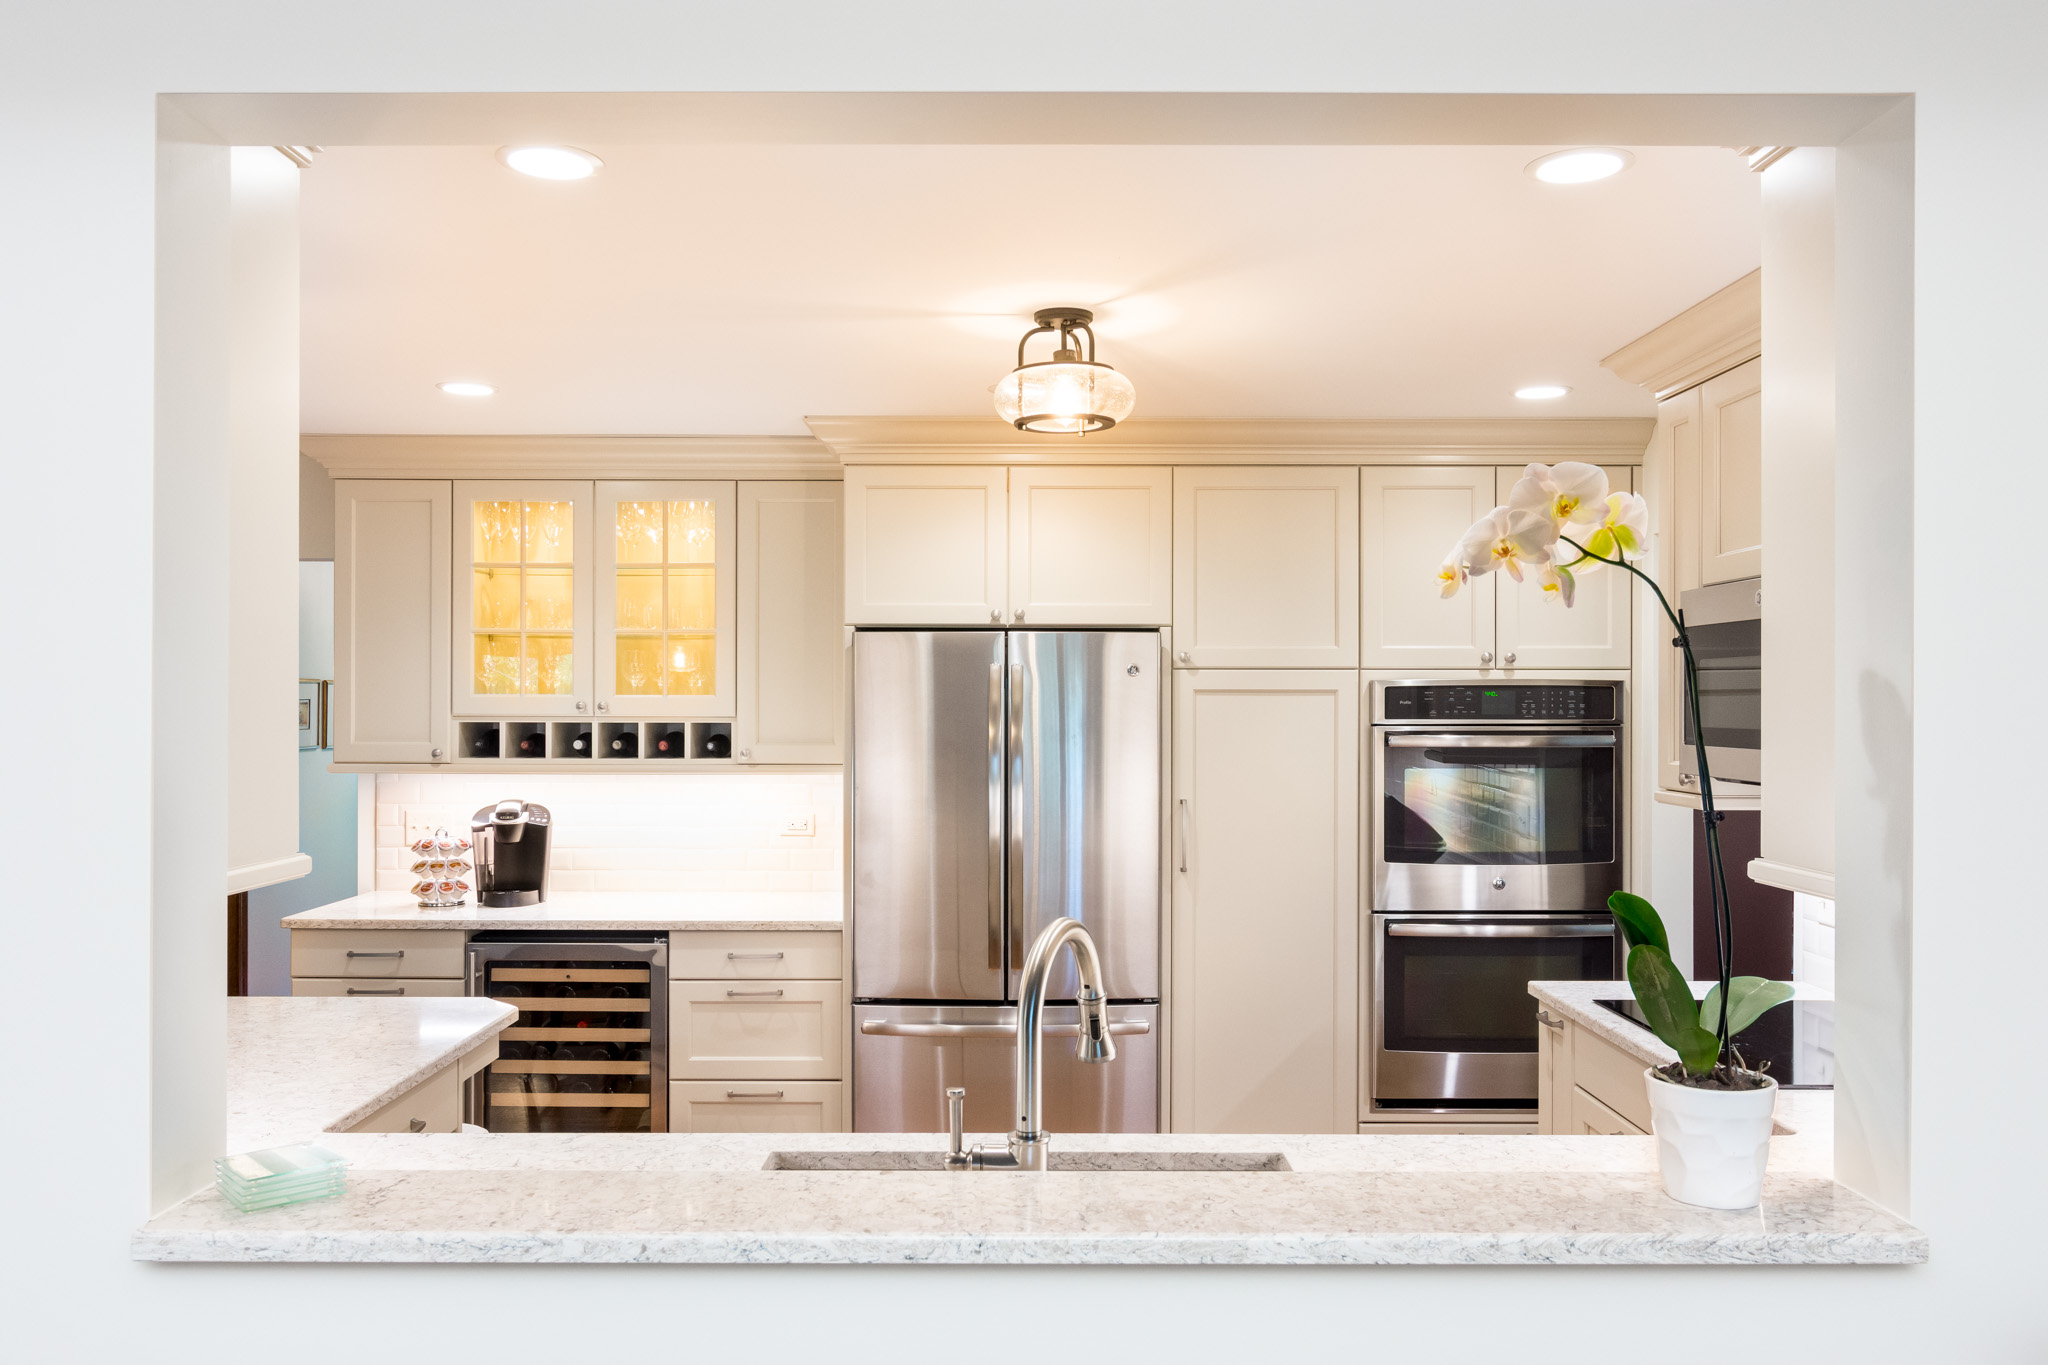 Choosing Appliances For An Aging In Place Kitchen Remodel Forward Design Build Remodel